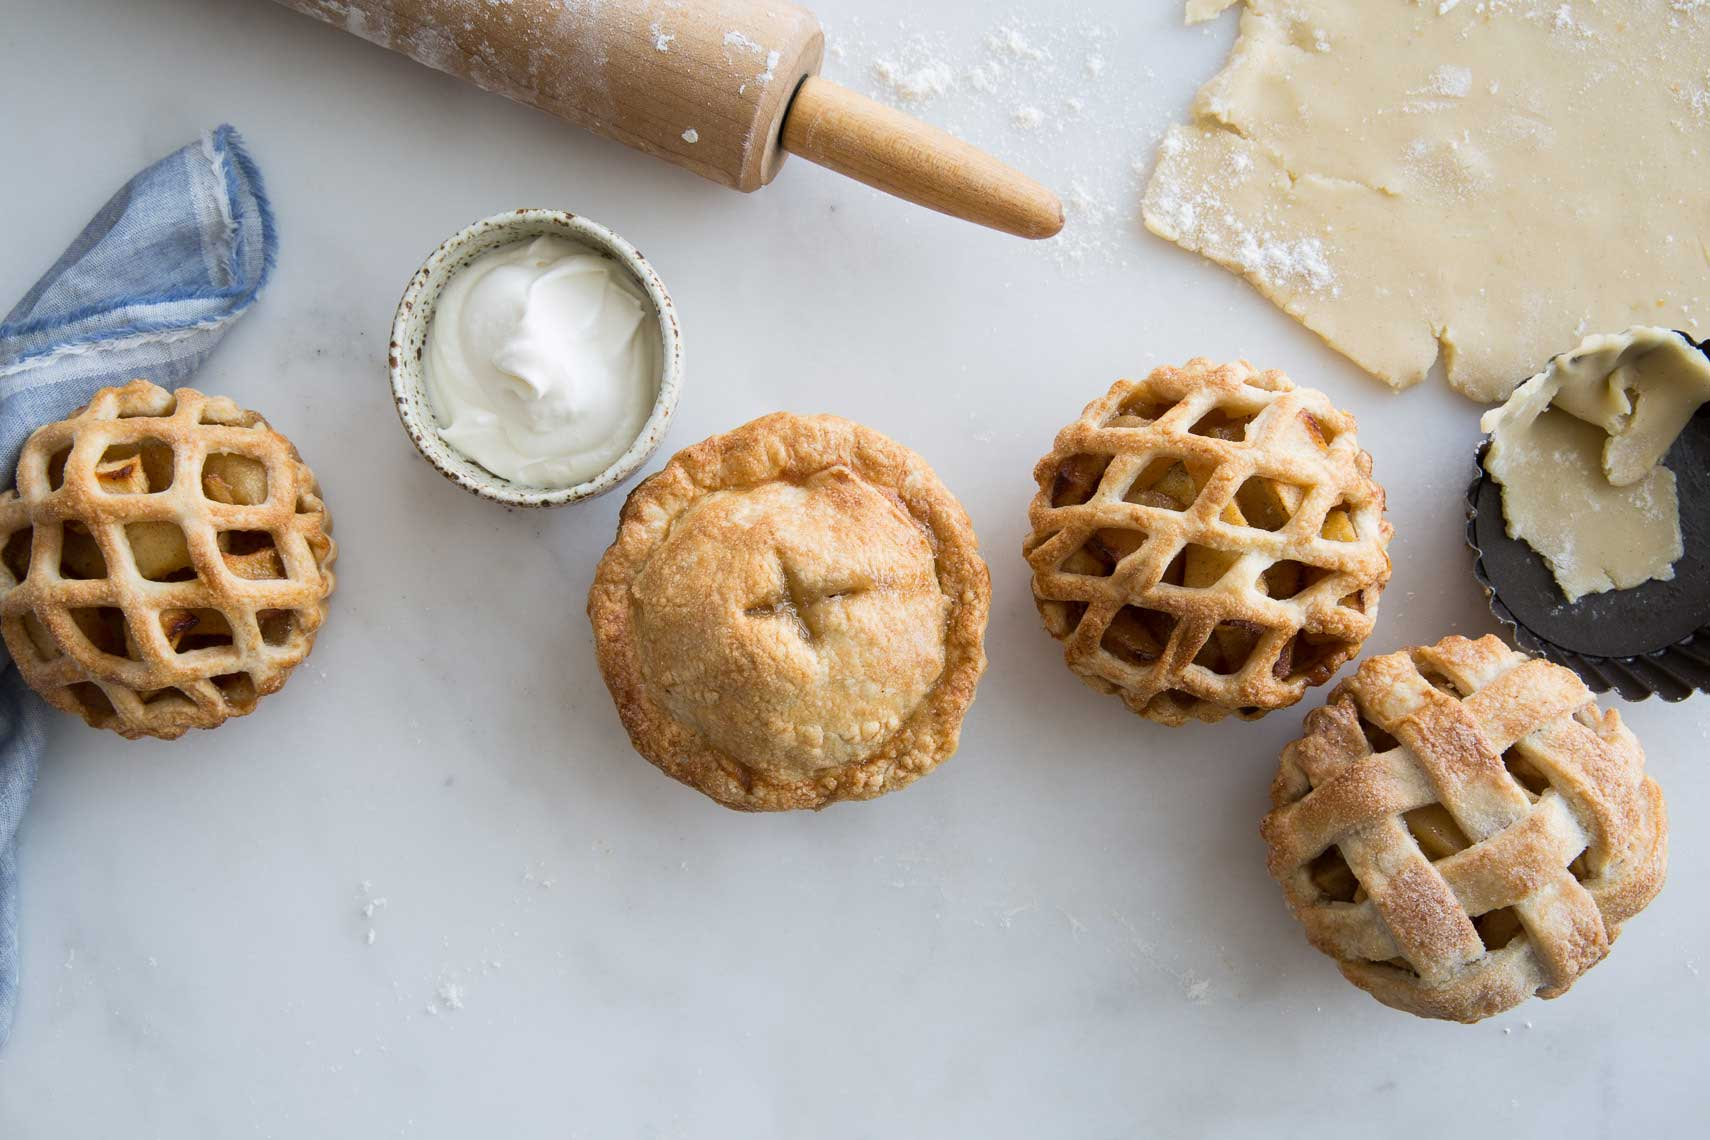 homemade lattice apple tarts in Seattle